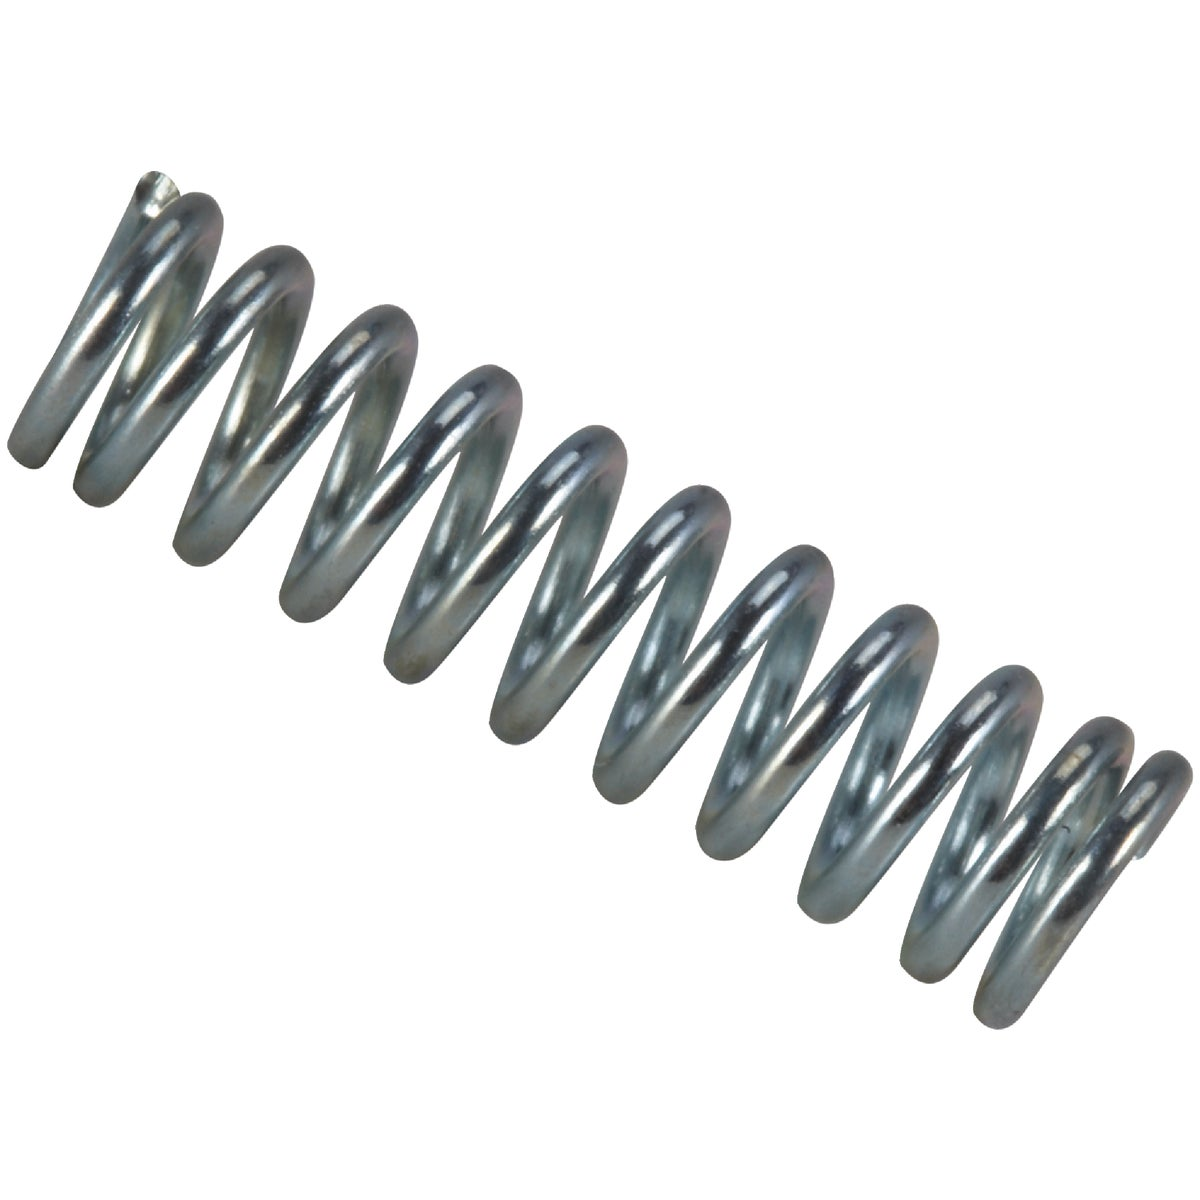 COMPRESSION SPRING - C-700 by Century Spring Corp